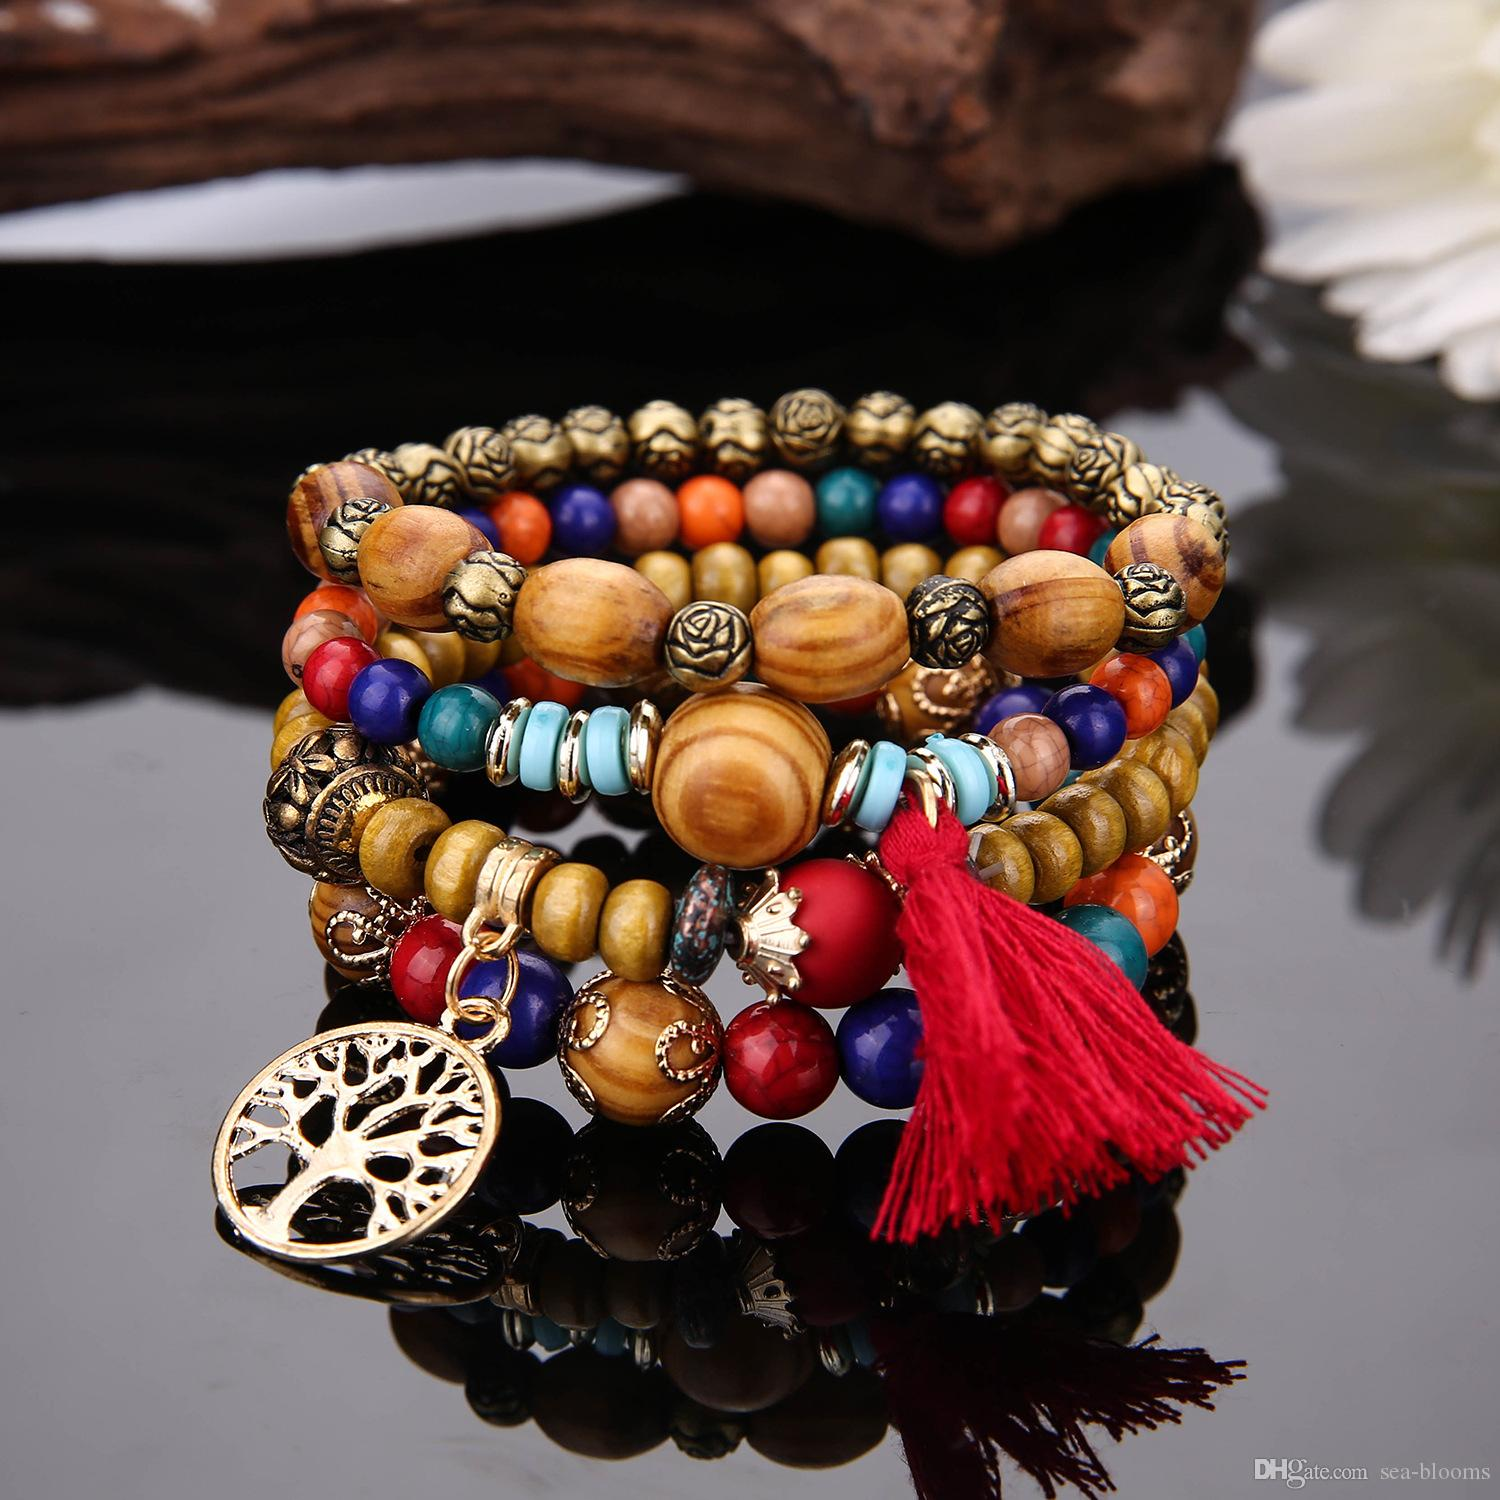 Newest Bohemian Tree Of Life Multilayer Wooden Beads Tassel Bracelets Stretch Mala Bangles Bracelet Elastic Hand String Jewelry Gift G107S F